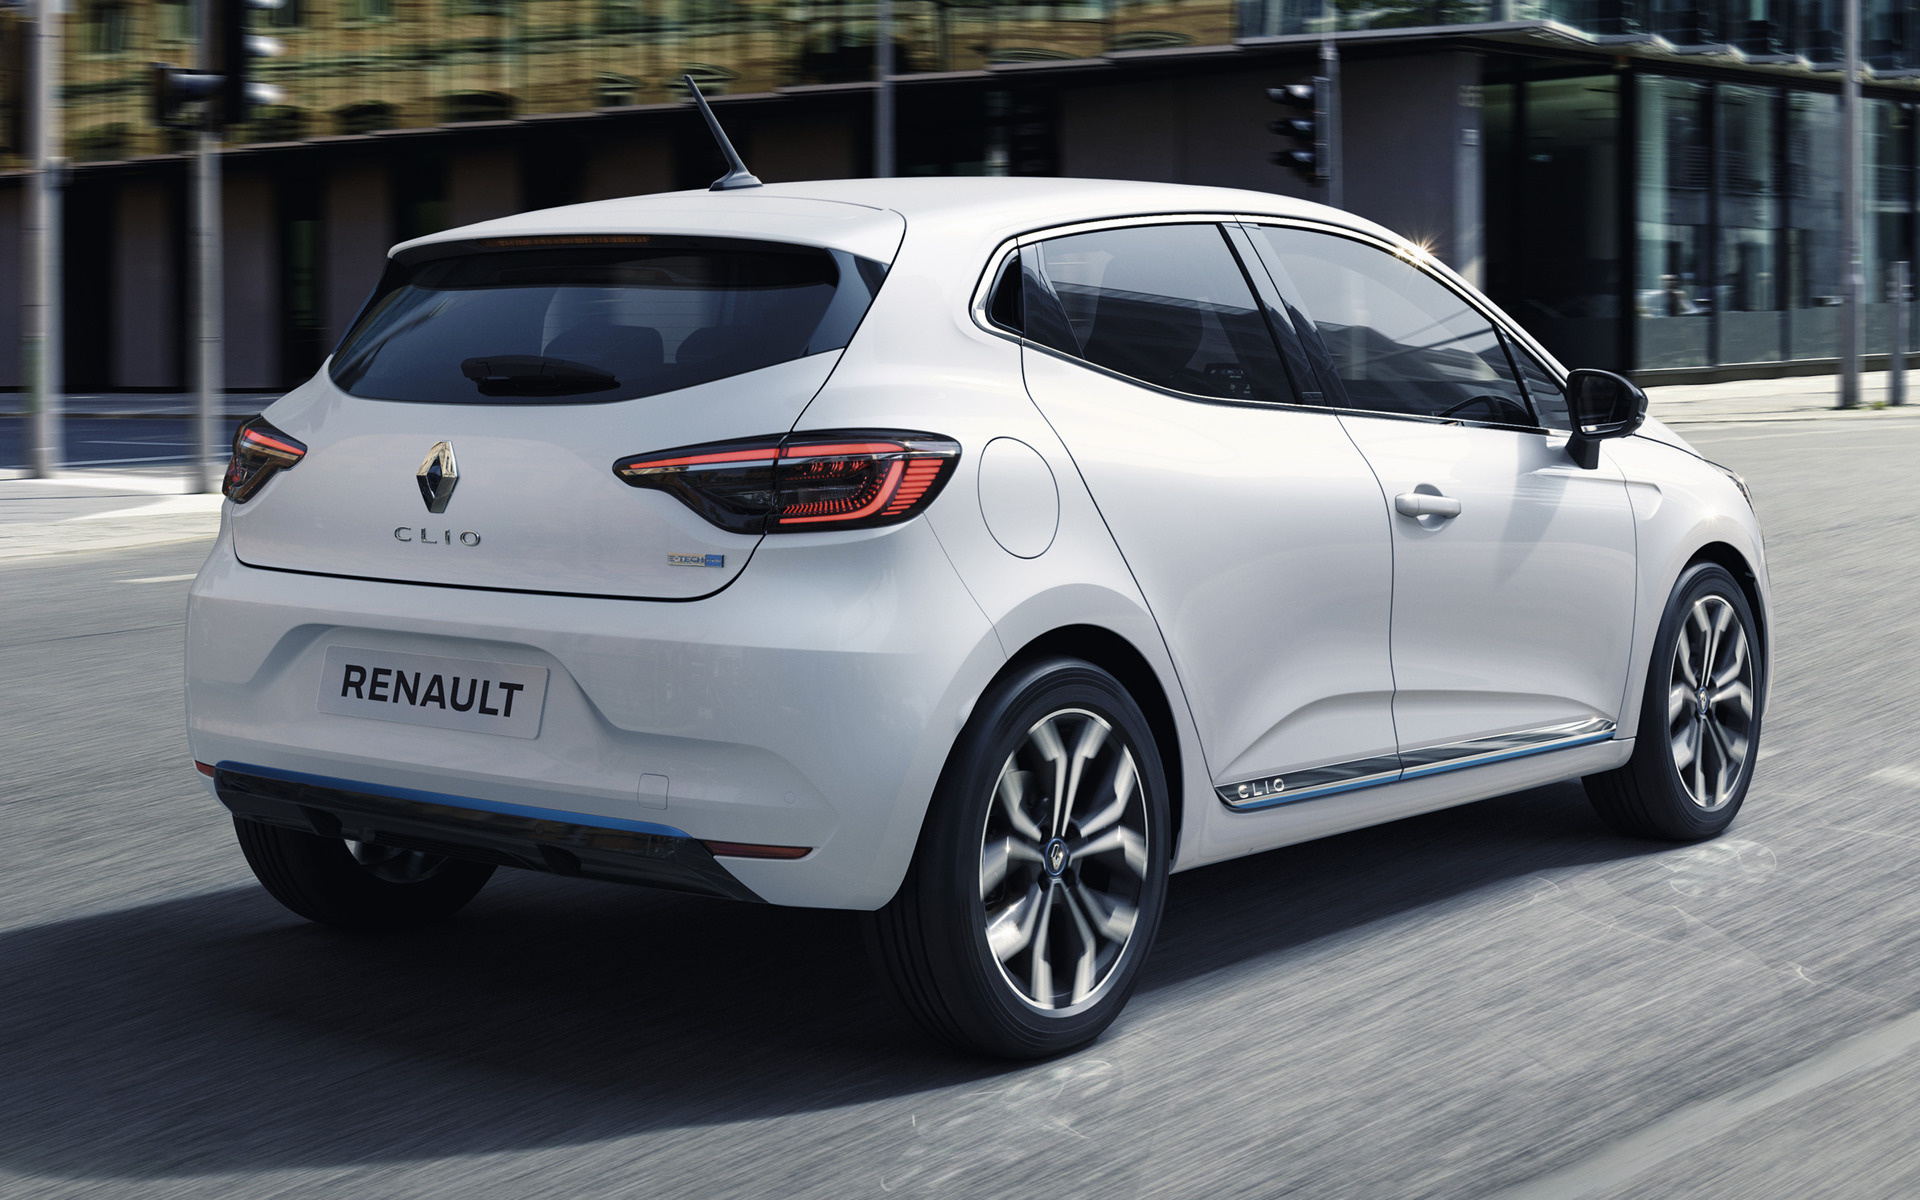 2020 Renault Clio E Tech Wallpapers And Hd Images Car Pixel